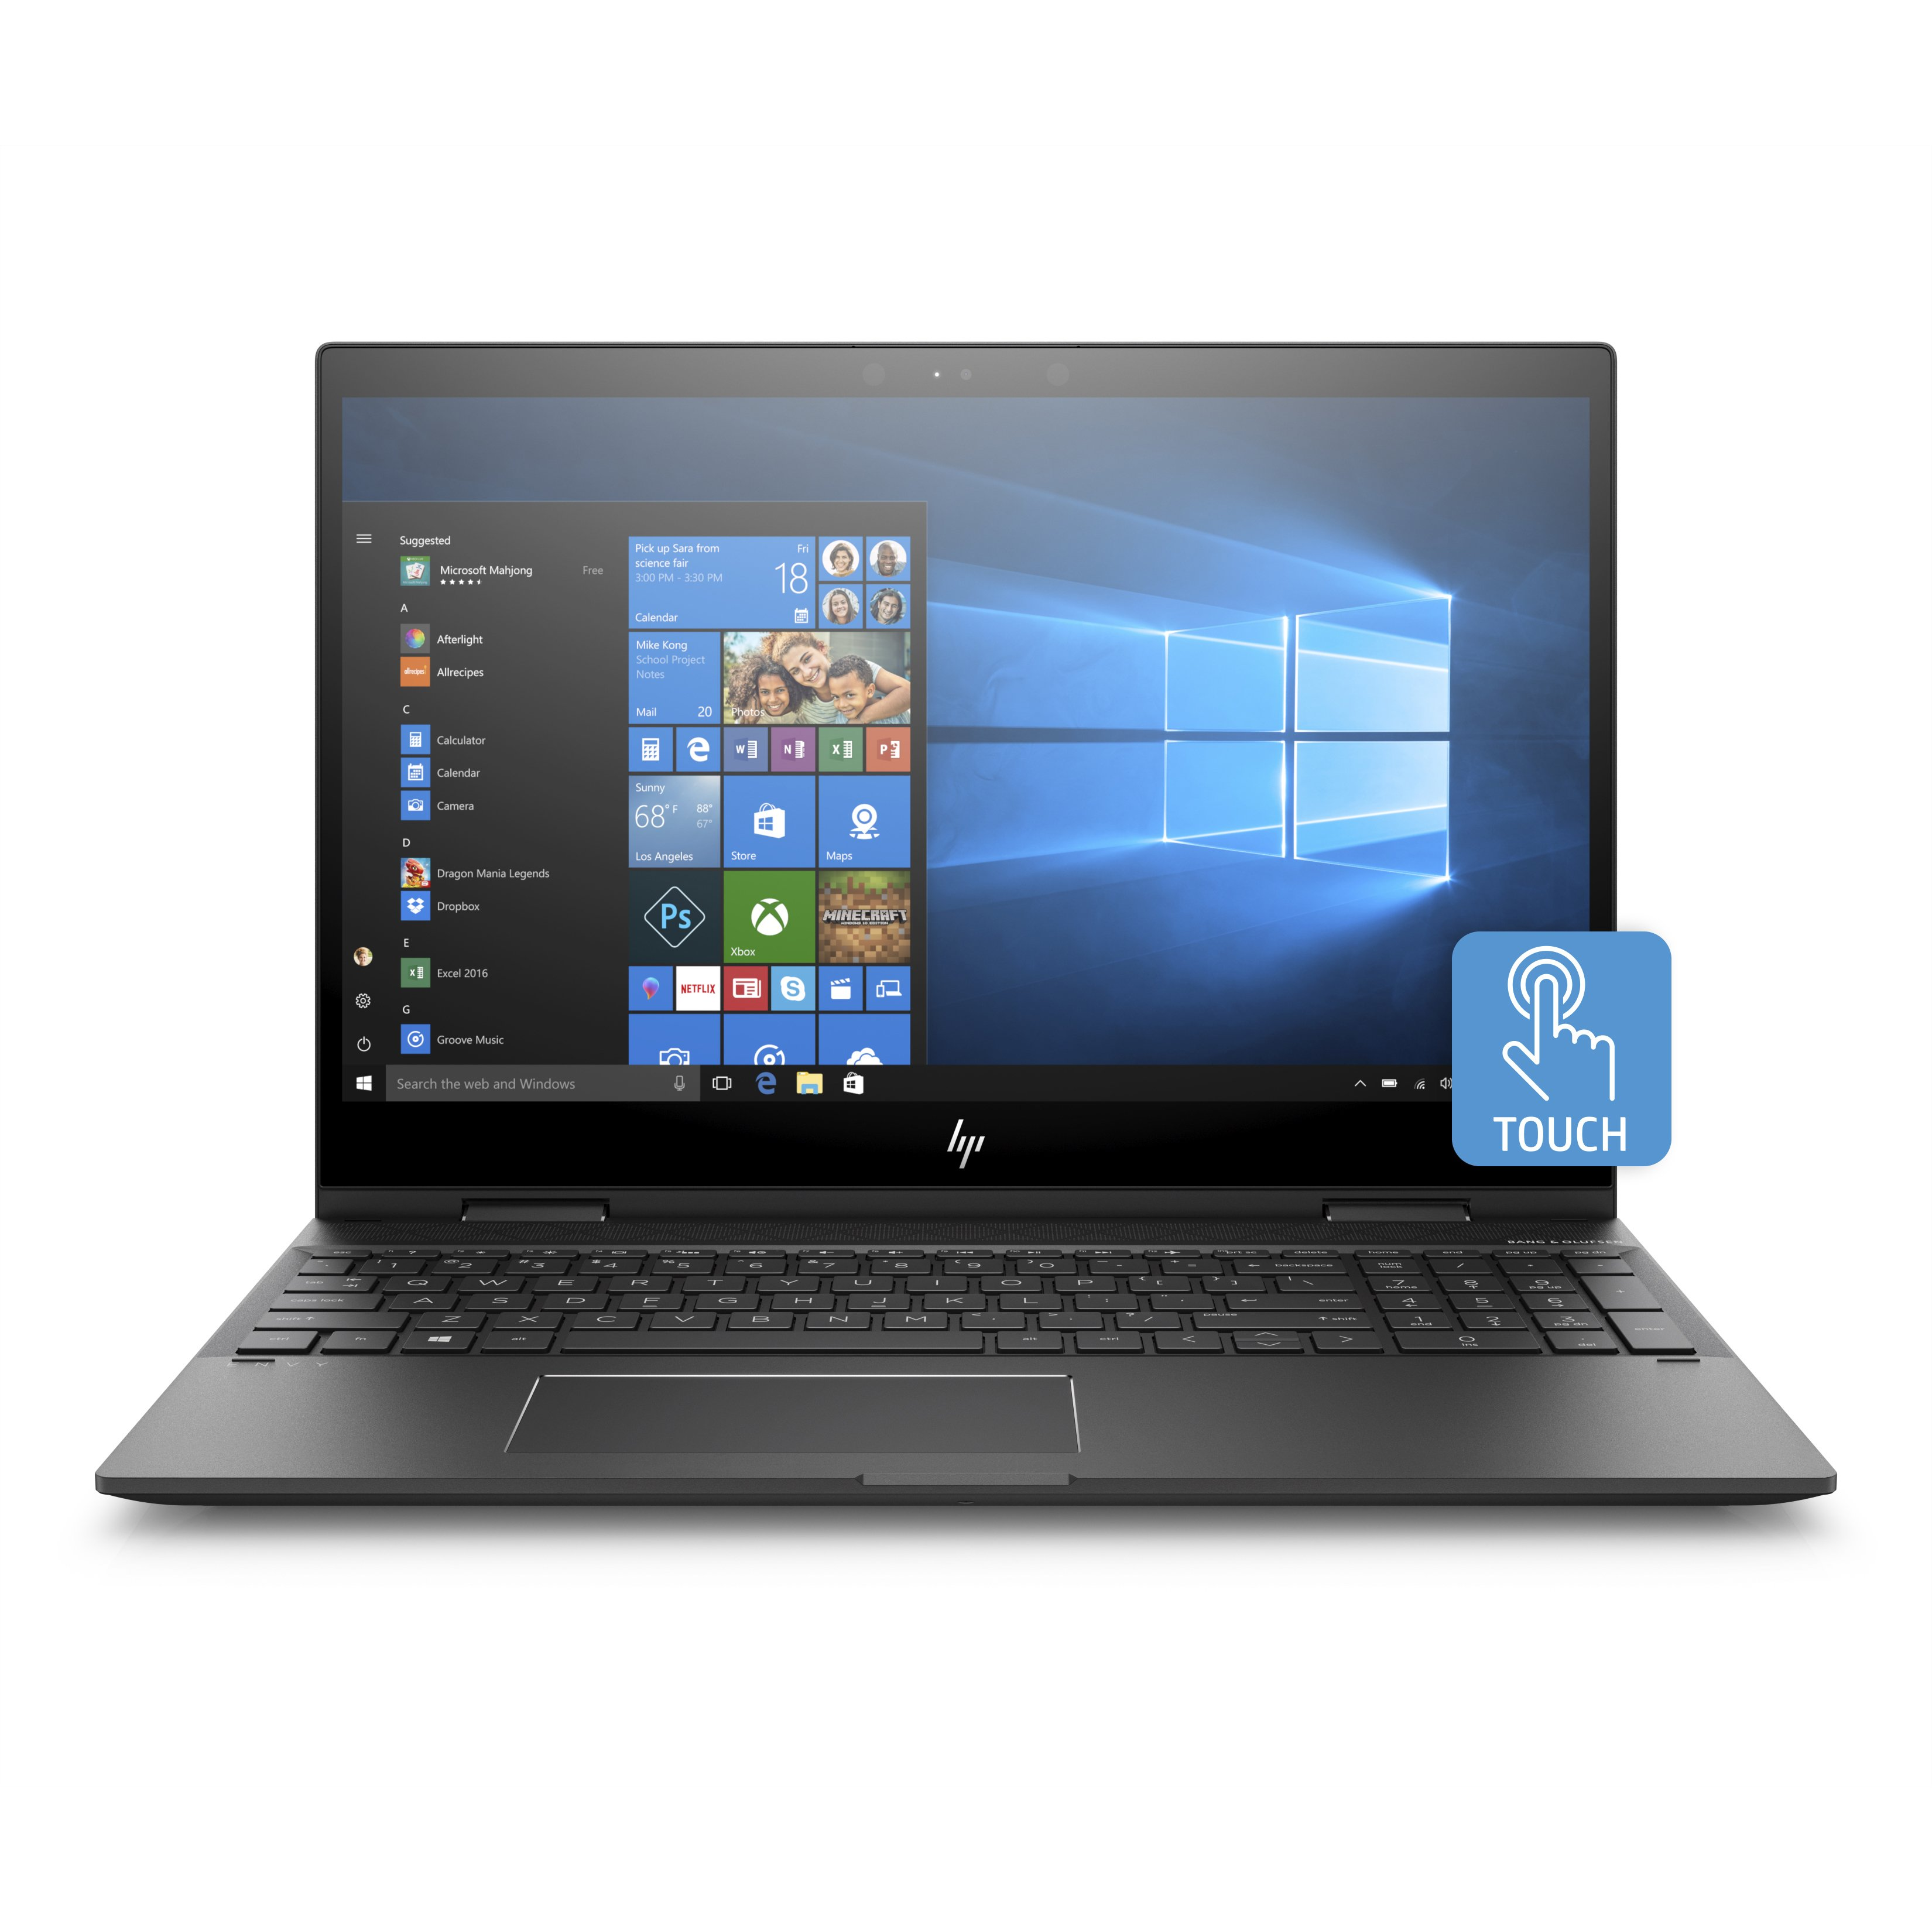 HP ENVY x360 15m-cp0000 15m-cp0011dx 15.6″ Touchscreen LCD 2 in 1 Not